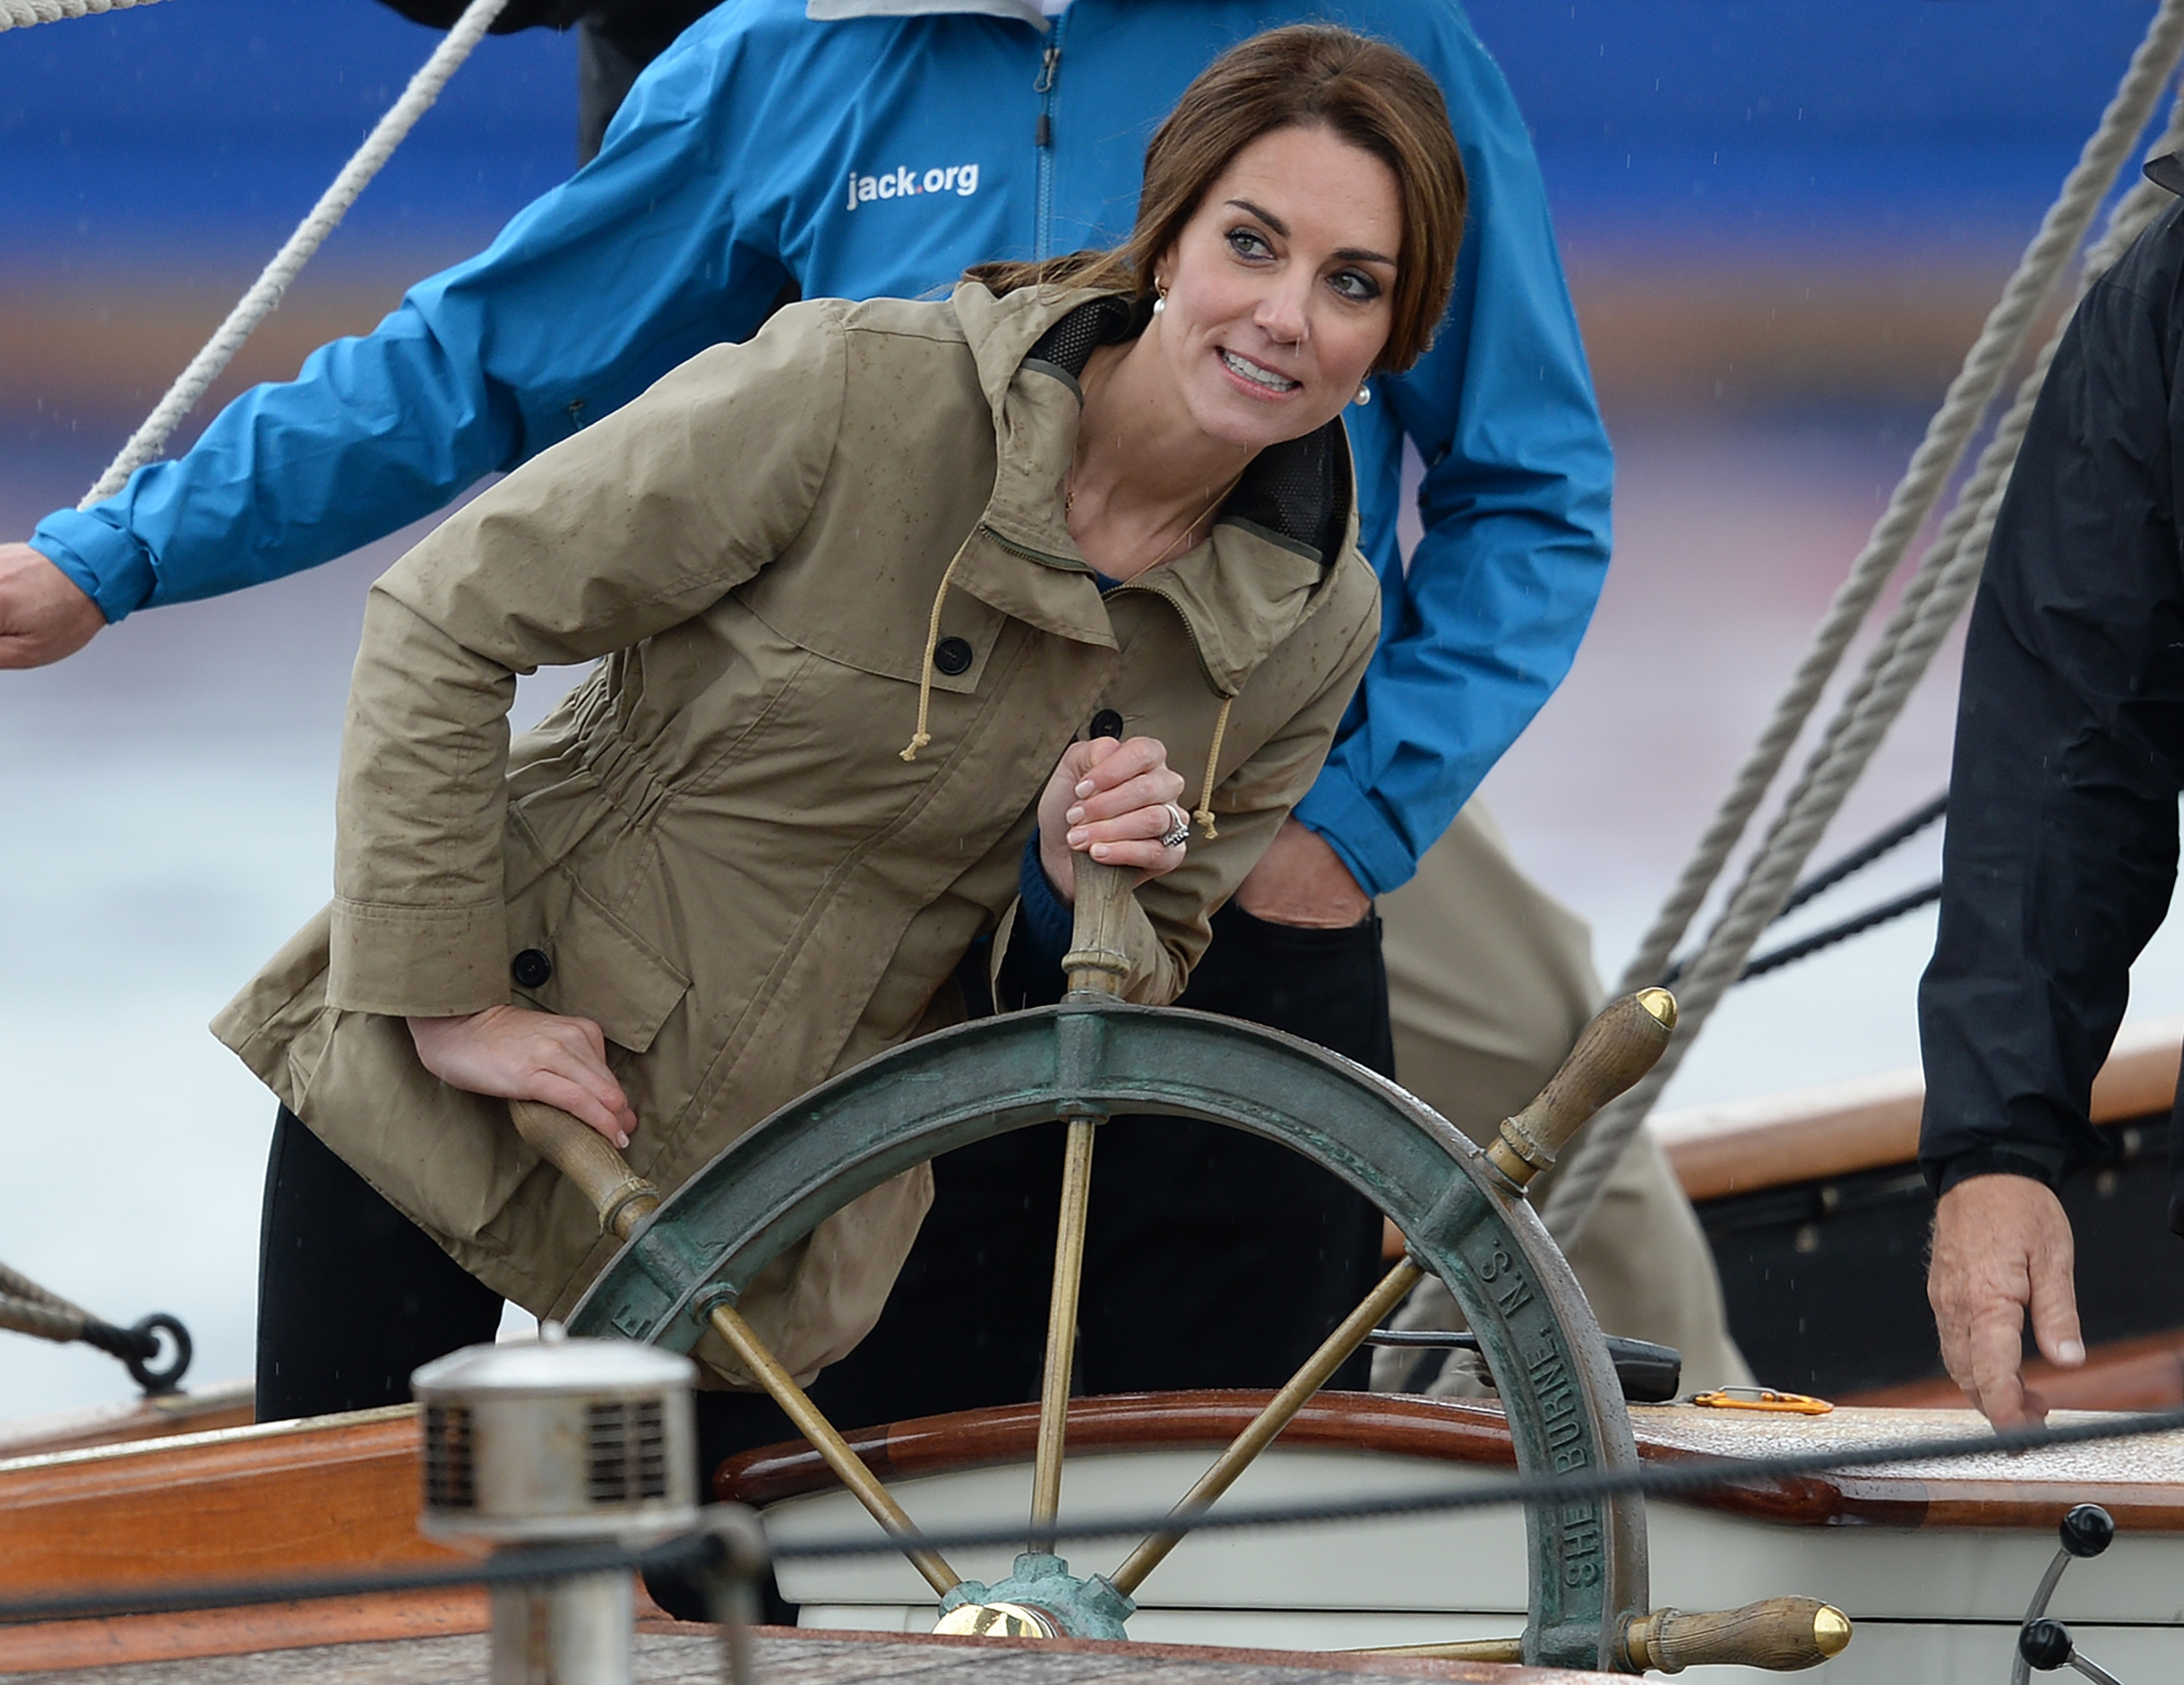 The Duke and Duchess of Cambridge sail on a Tall Ship